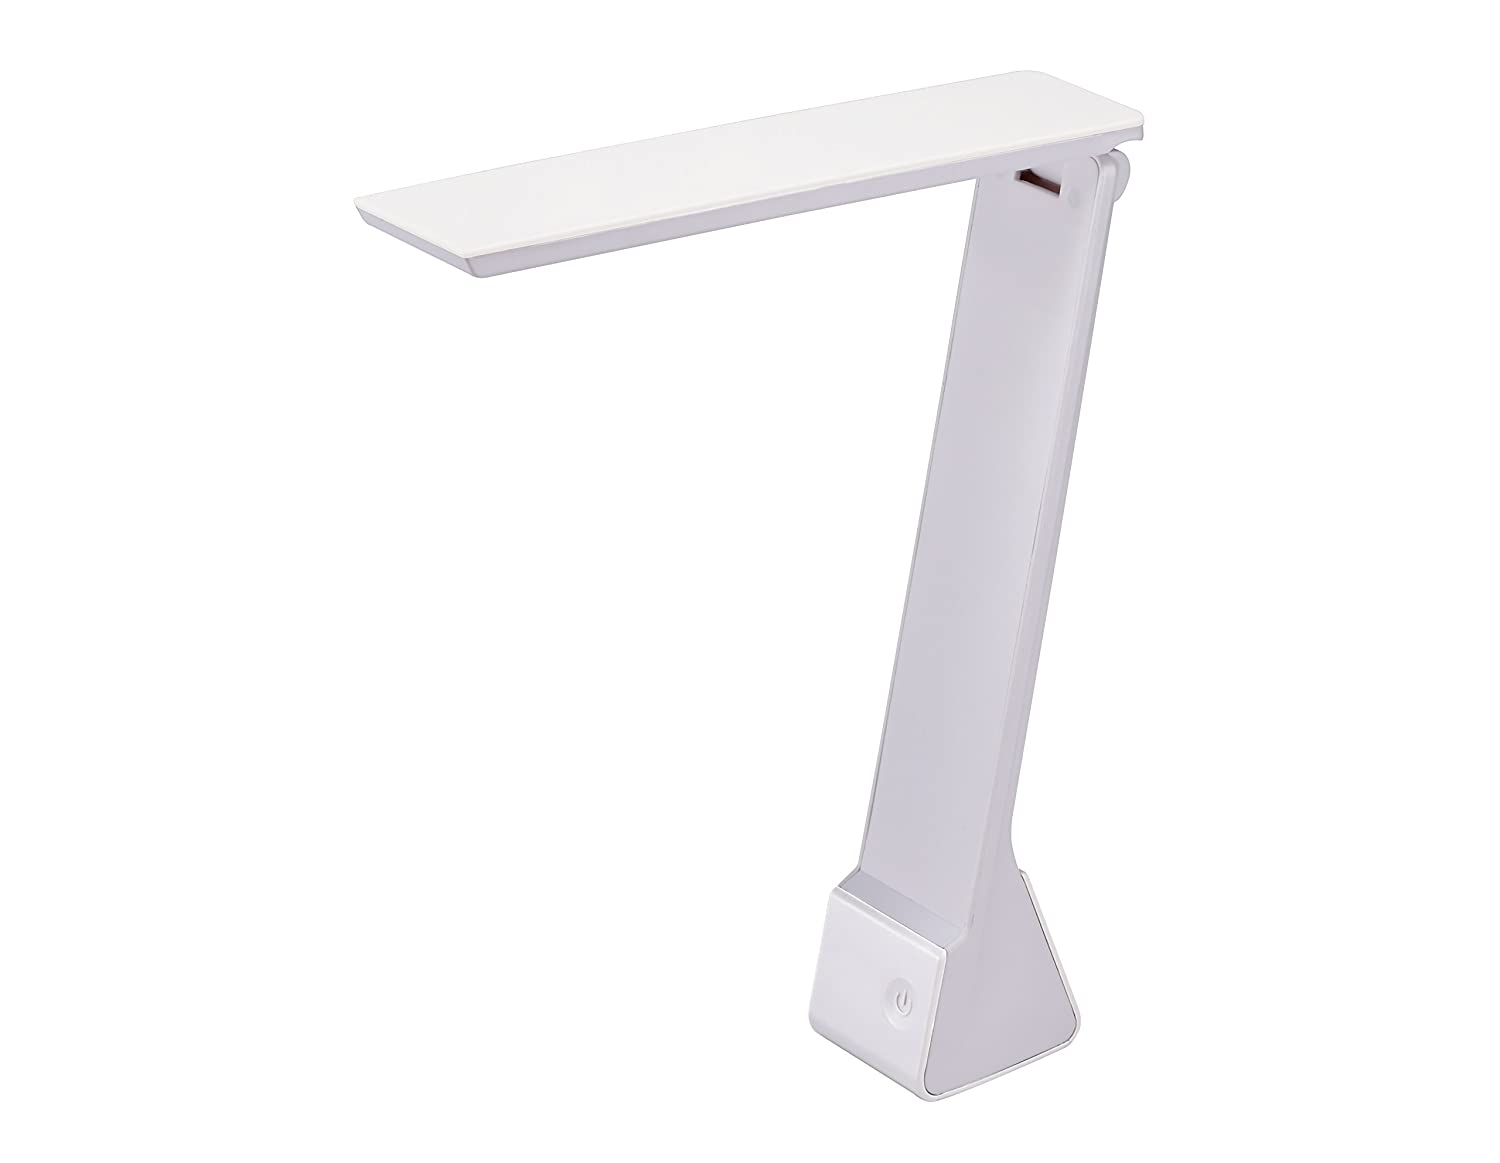 Bostitch Office KT-VLED1810-WHITE Rechargable Battery LED Desk Lamp, 3 Color Temperatures, Flip Open, White